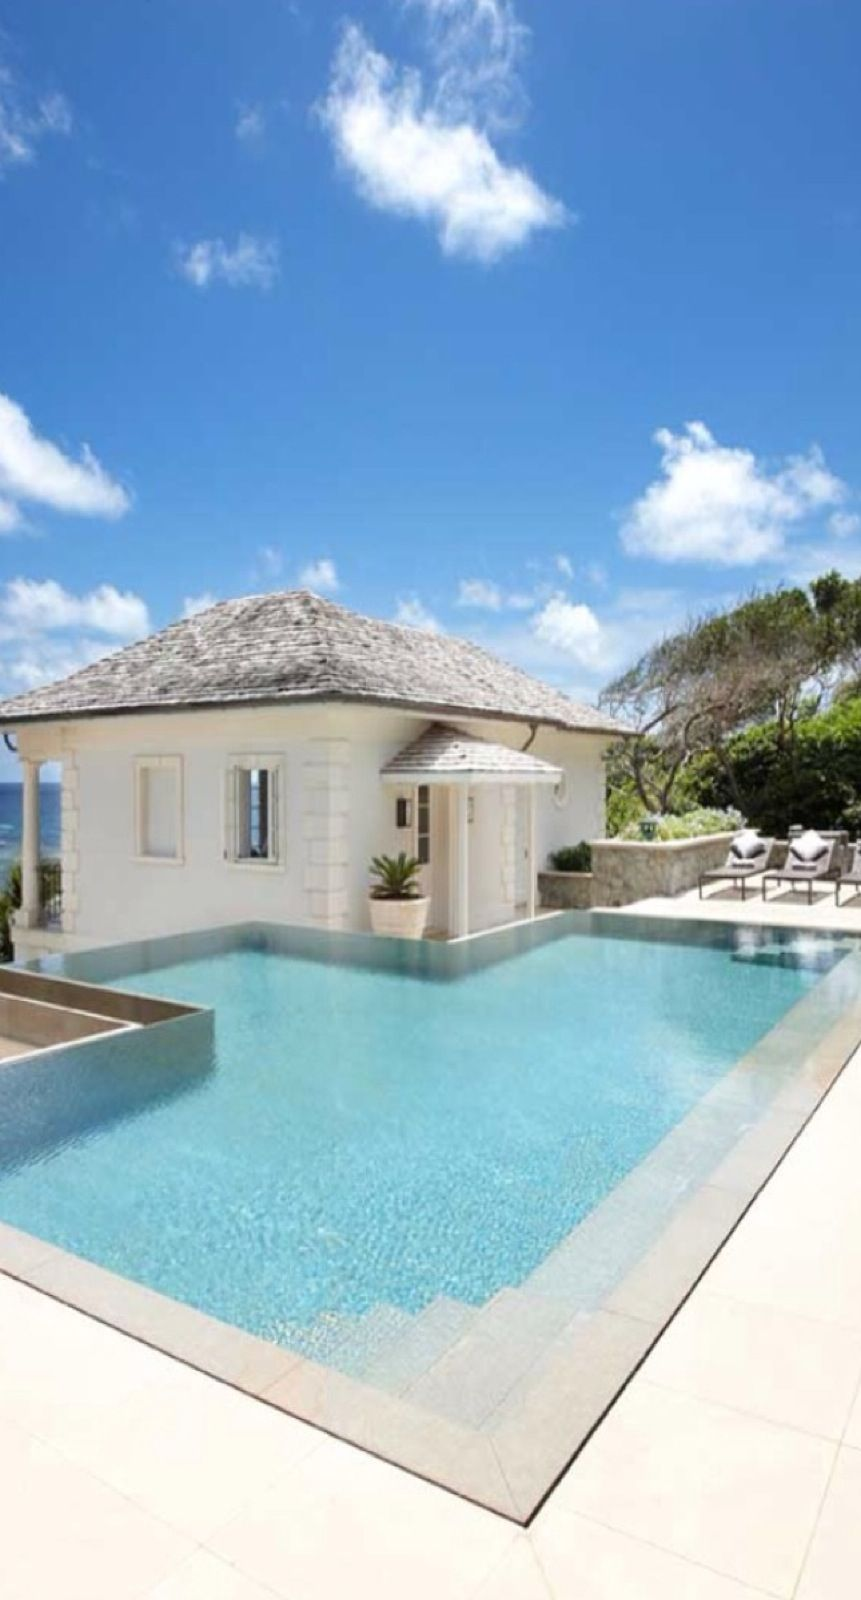 Luxury pool houses posh poolside piscine decoration - Luxury above ground pools ...